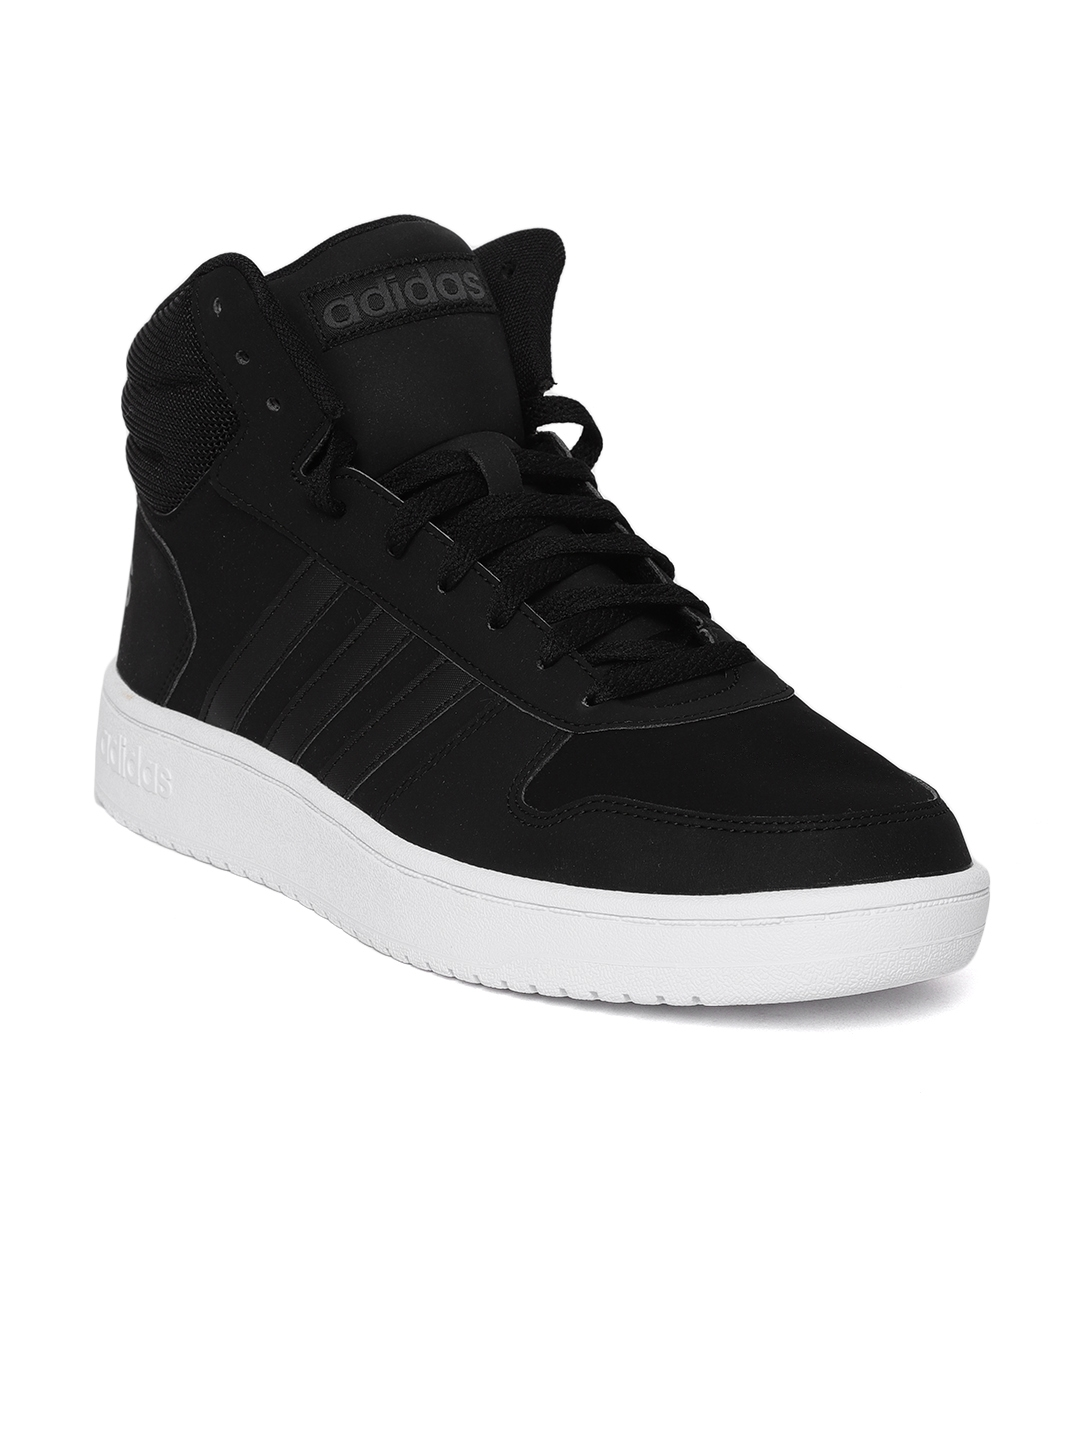 10ec313484af Buy ADIDAS Men Black Hoops 2.0 Mid Leather Basketball Shoes - Sports ...